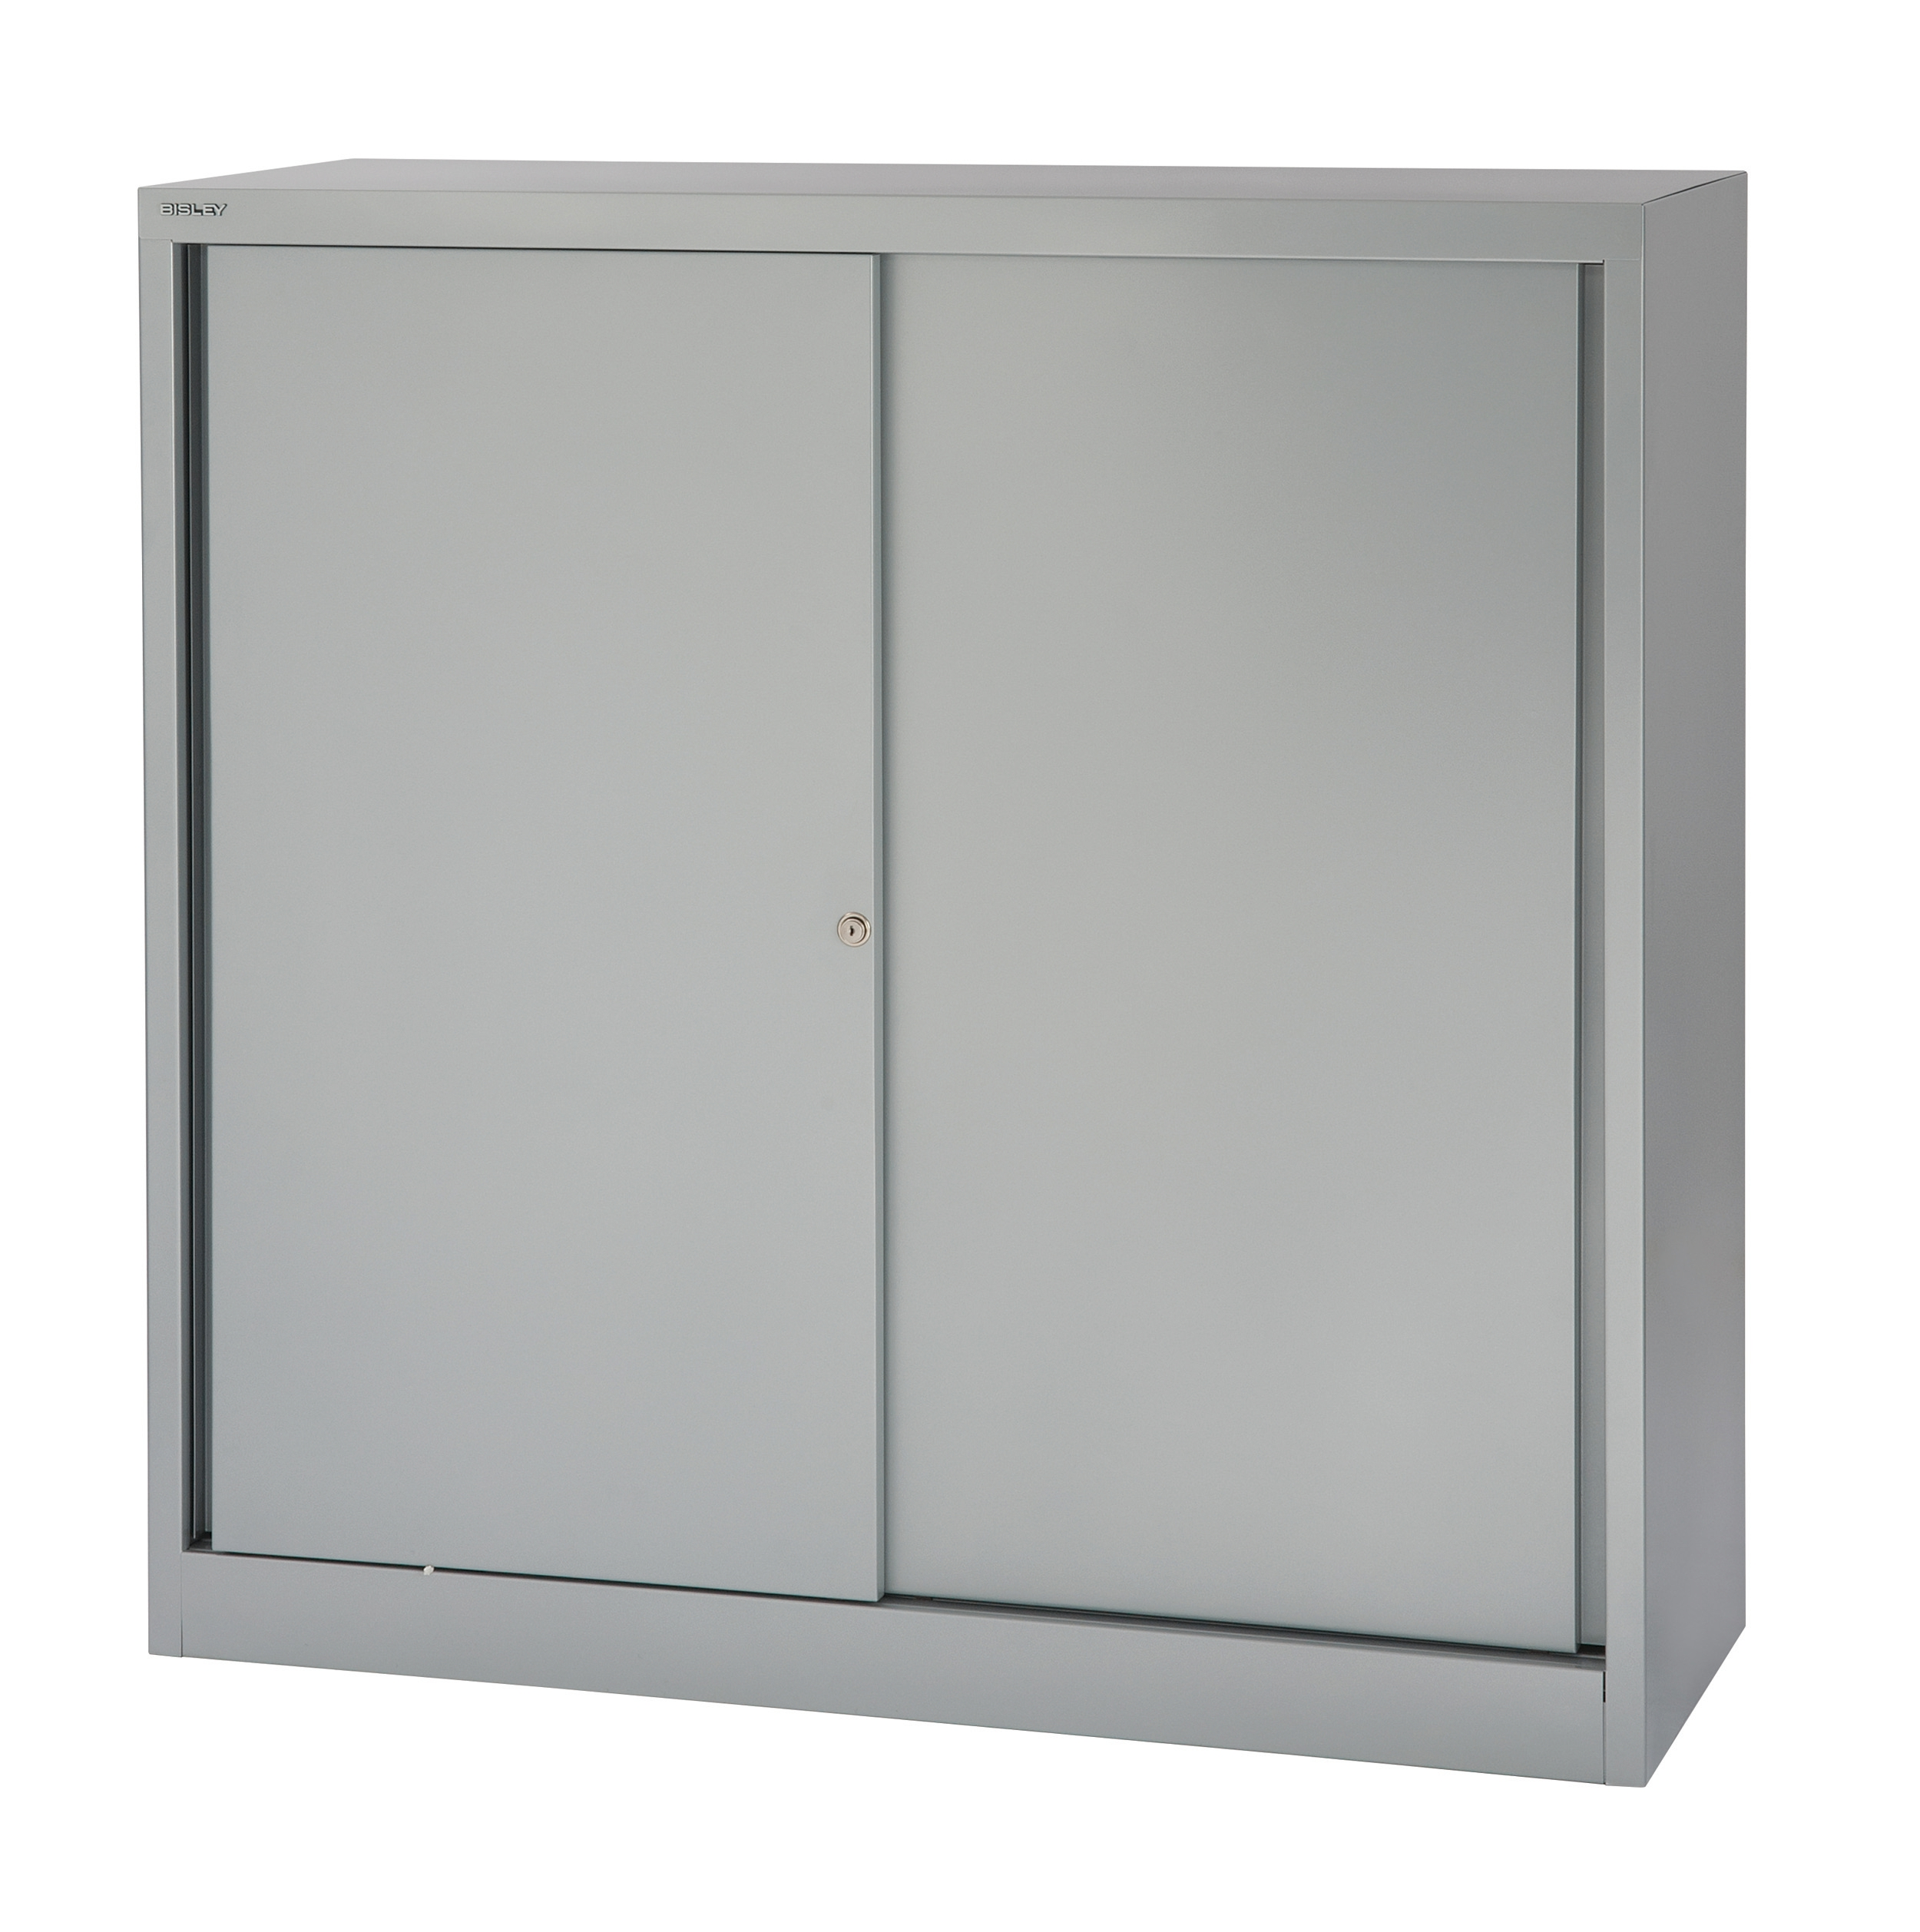 Image for Bisley Sliding Door Cupboard with 2 Shelves W1200xH1181 Silver Ref SD412/11/2S-arn